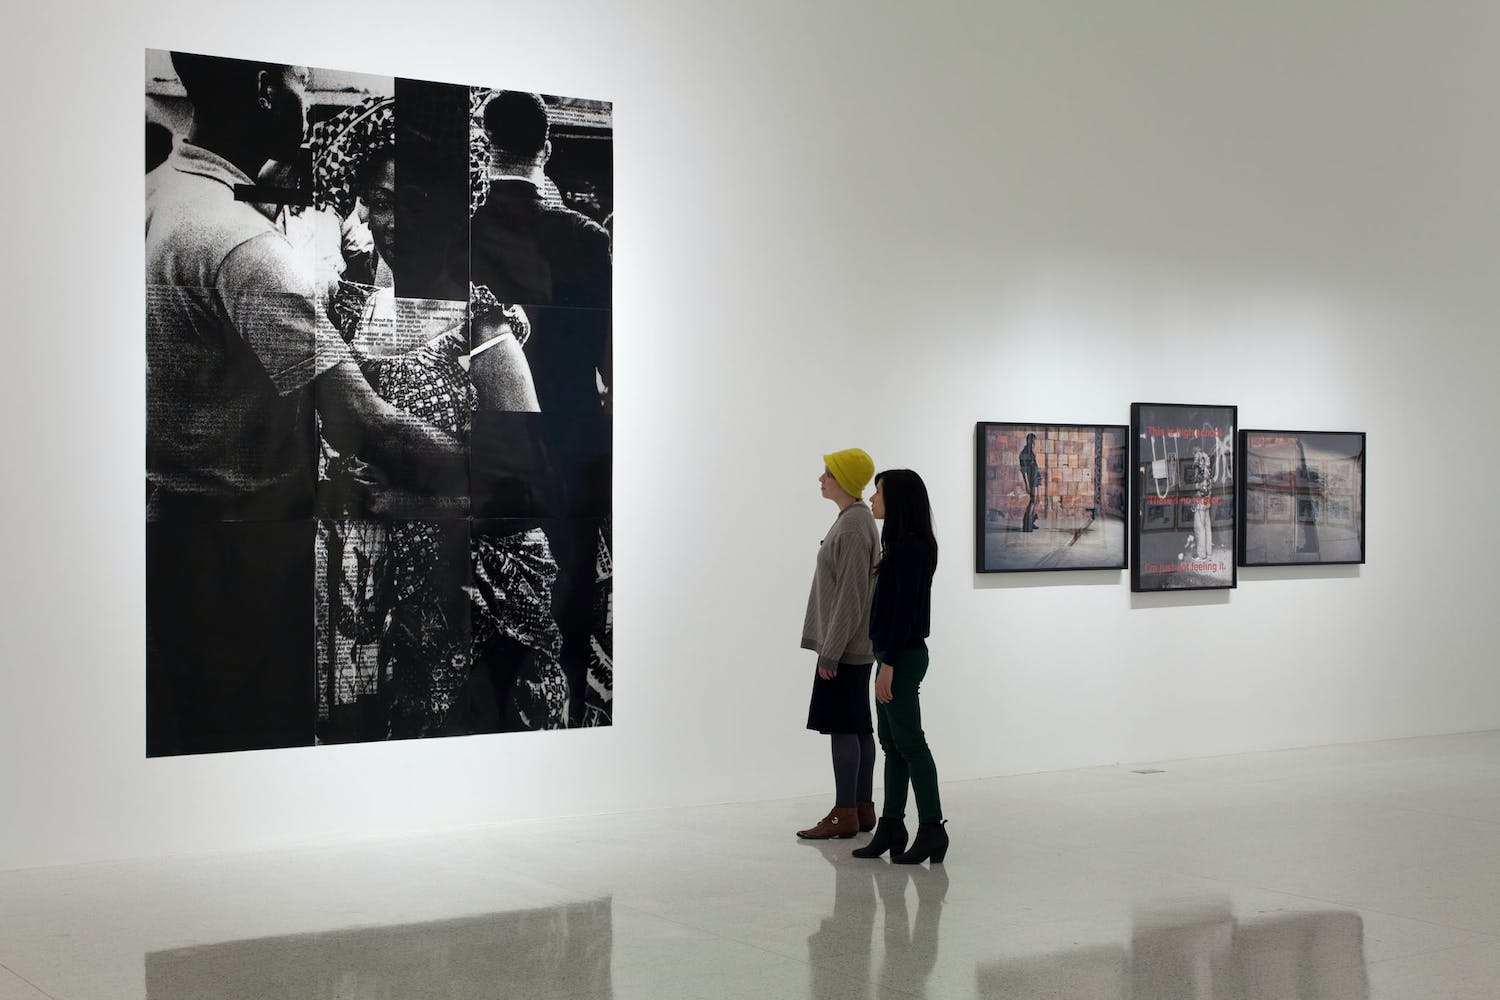 View of the exhibition Radical Presence: Black Performance in Contemporary Art, 2014; (left to right): Adam Pendleton with Jaan Evart and Marc Hollenstein, Black Dada (Ian Berry, couple dancing, independence celebration Congo, 1960), 2008/2012; Clifford Owens, Anthology (Glenn Ligon), 2011